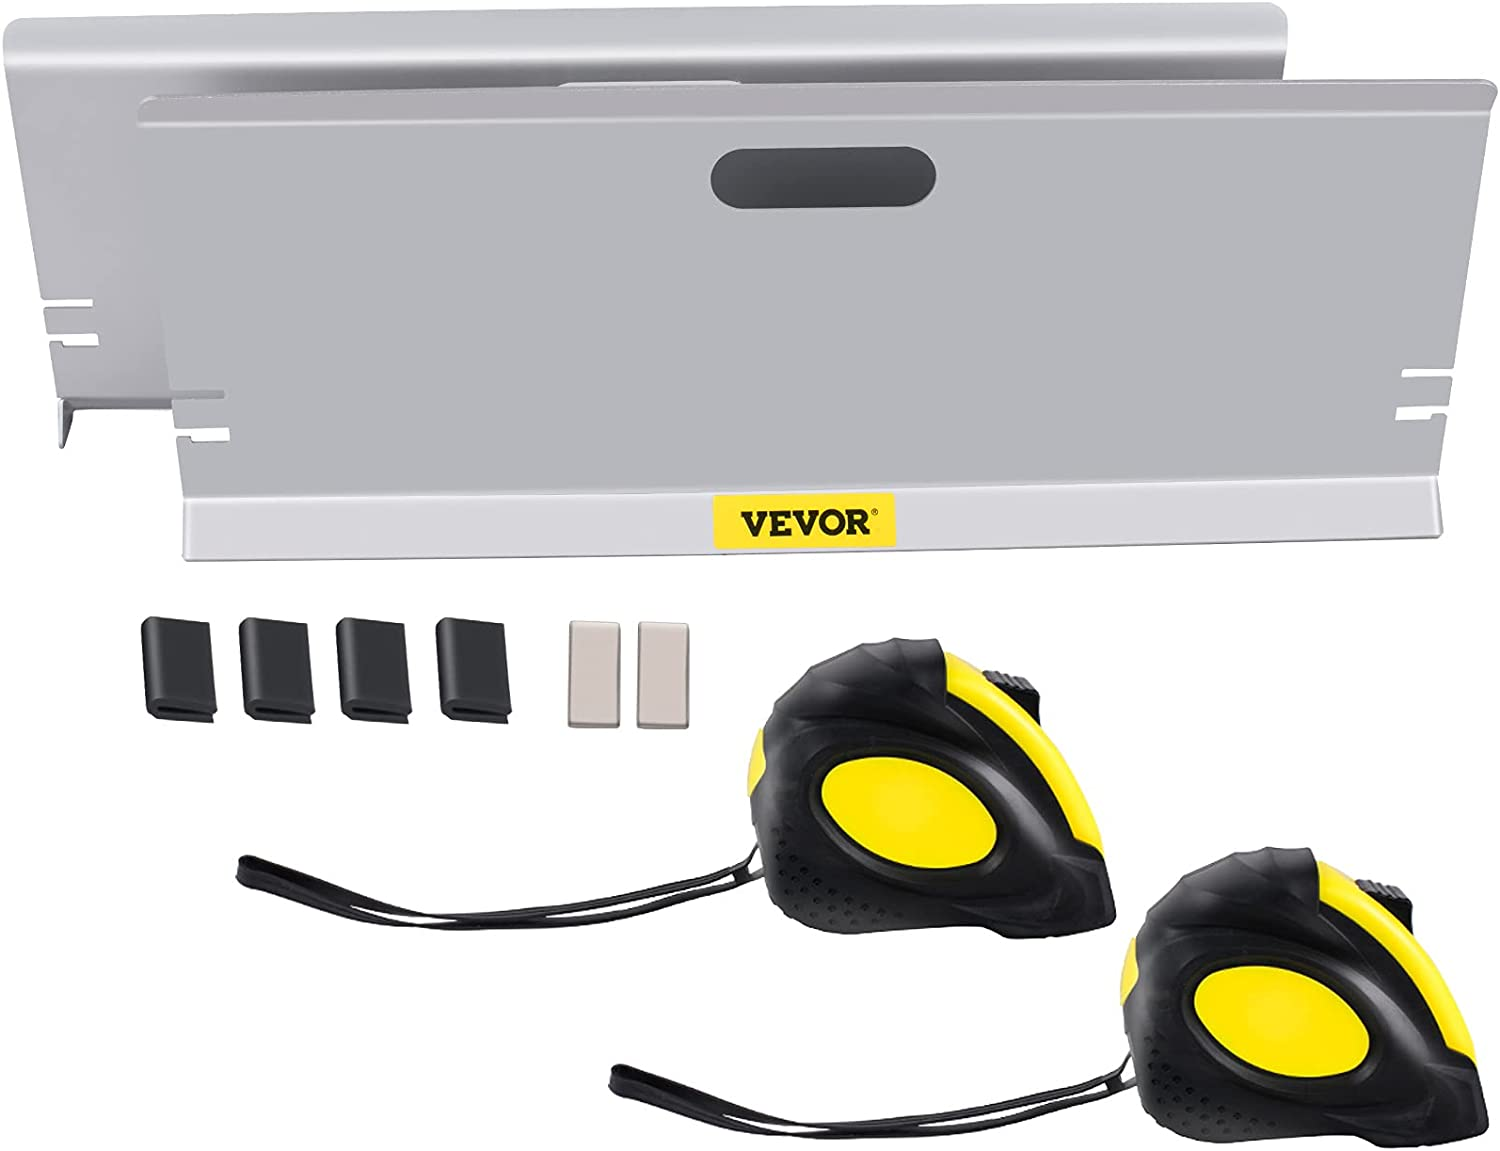 VEVOR Free shipping on posting reviews Wheel Alignment Tool Toe Probes Aluminum Plates without Ranking TOP1